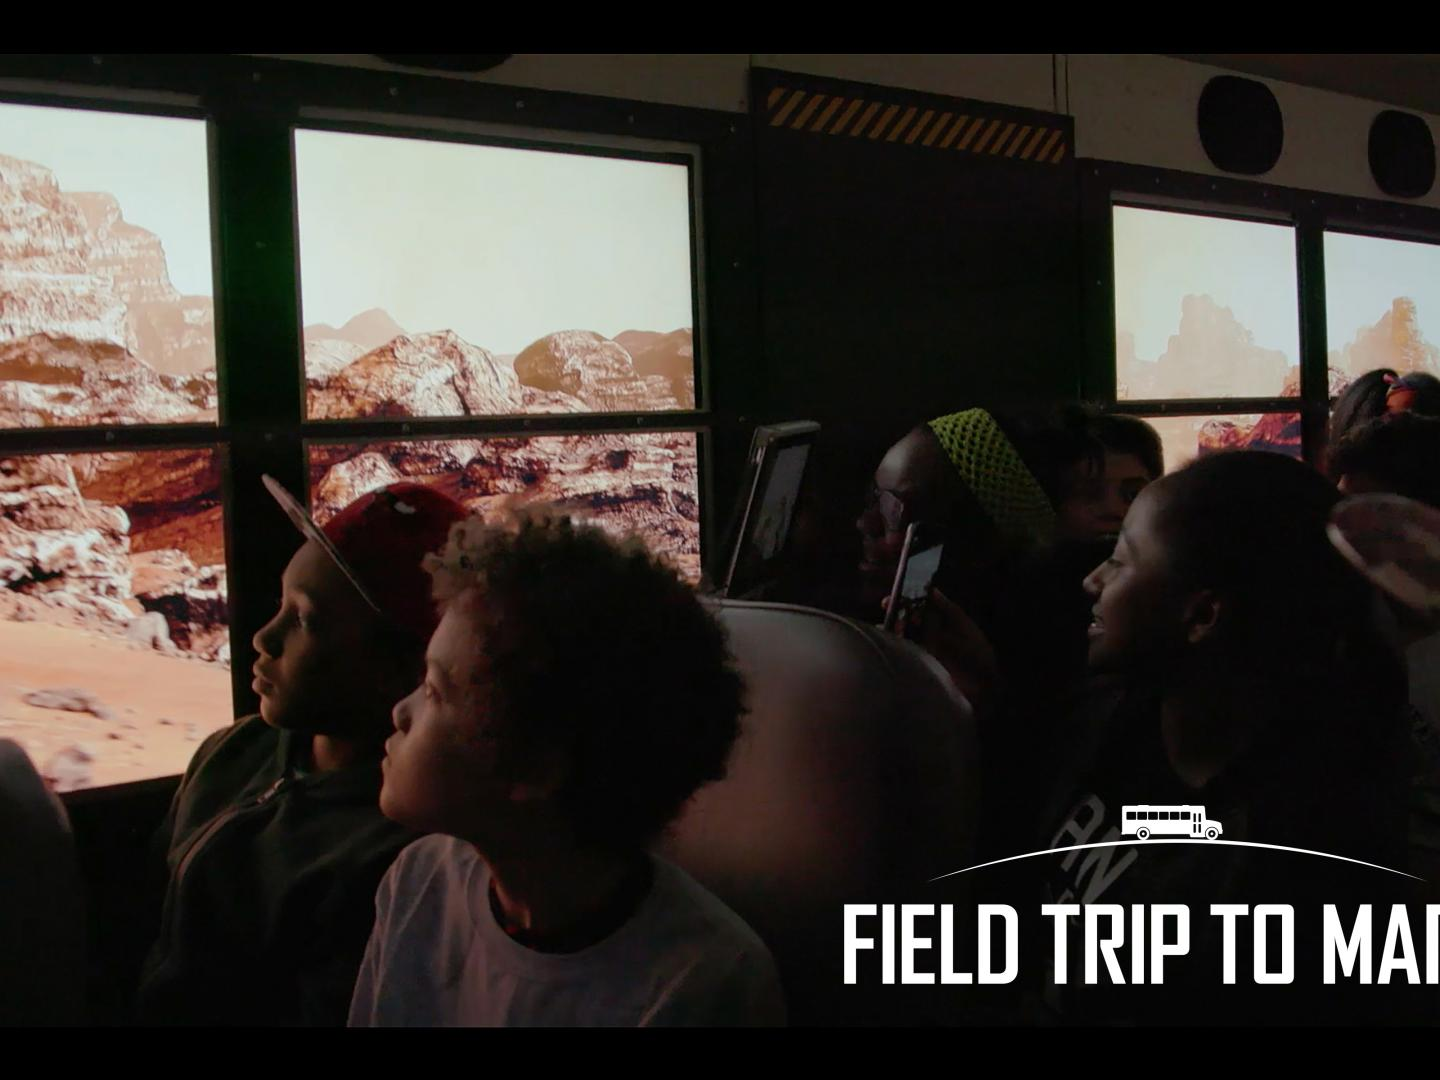 The Field Trip to Mars Thumbnail